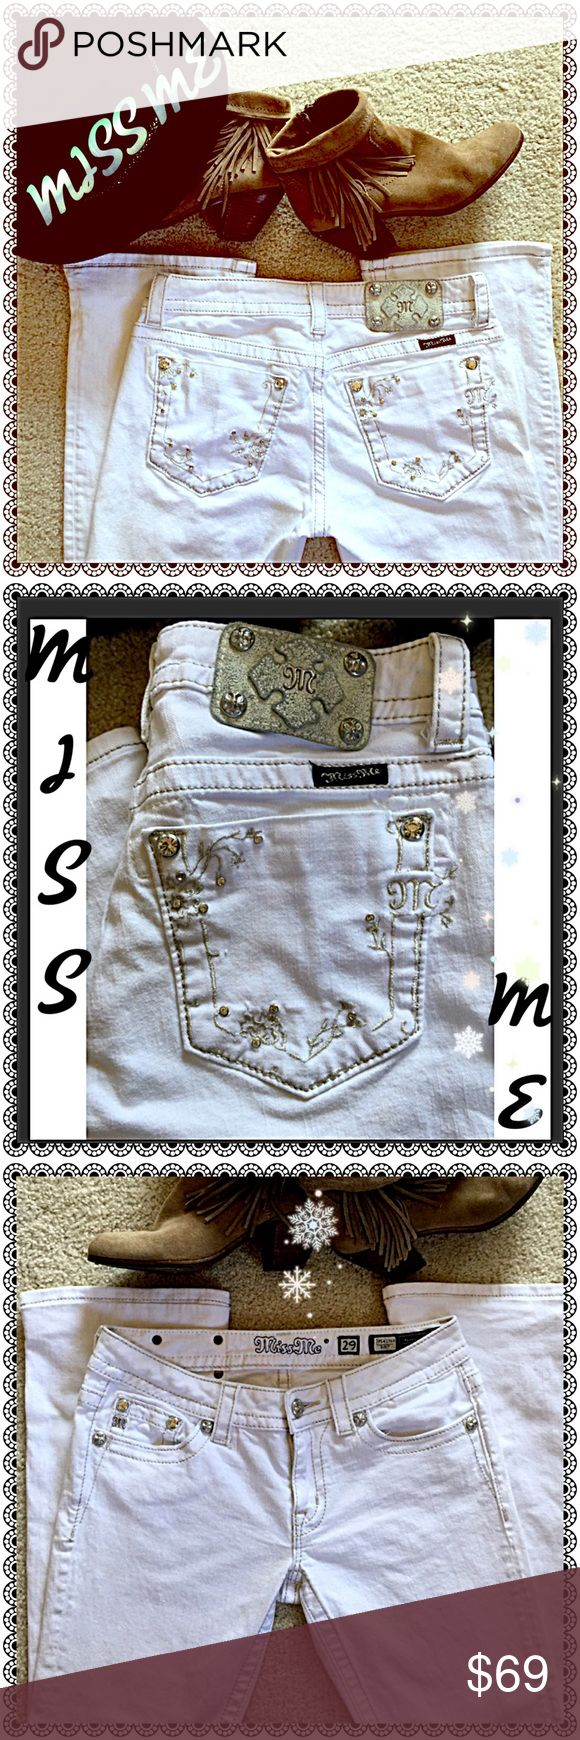 MISS ME GORGEOUS ❄️️WINTER WHITE BOOTCUT JEANS❄️️ A STUNNING Pair of MISS ME Rhinestone Embellished Bootcut Jeans in PERFECT Condition! GORGEOUS Winter White❄️️Looks AMAZING With Just About Everything! Love ❤️ These! ❄️️ Miss Me Jeans Boot Cut